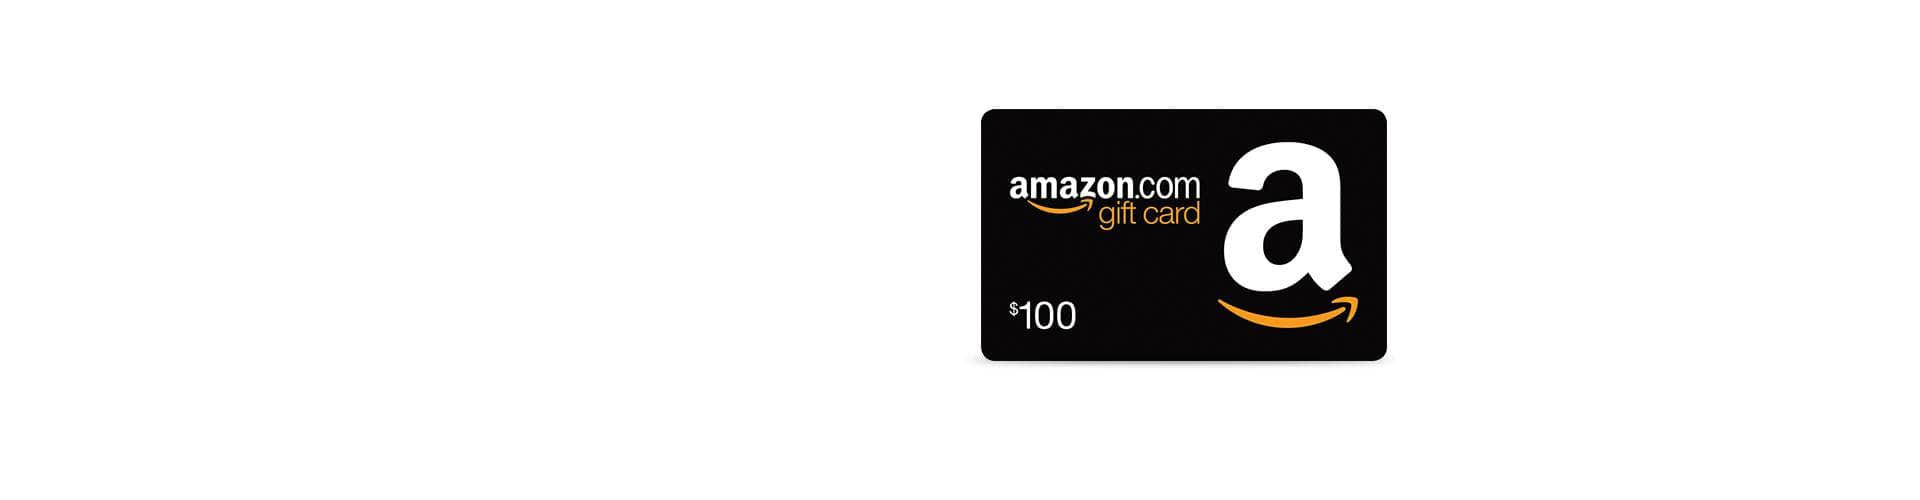 Get a $100 Amazon.com Gift Card